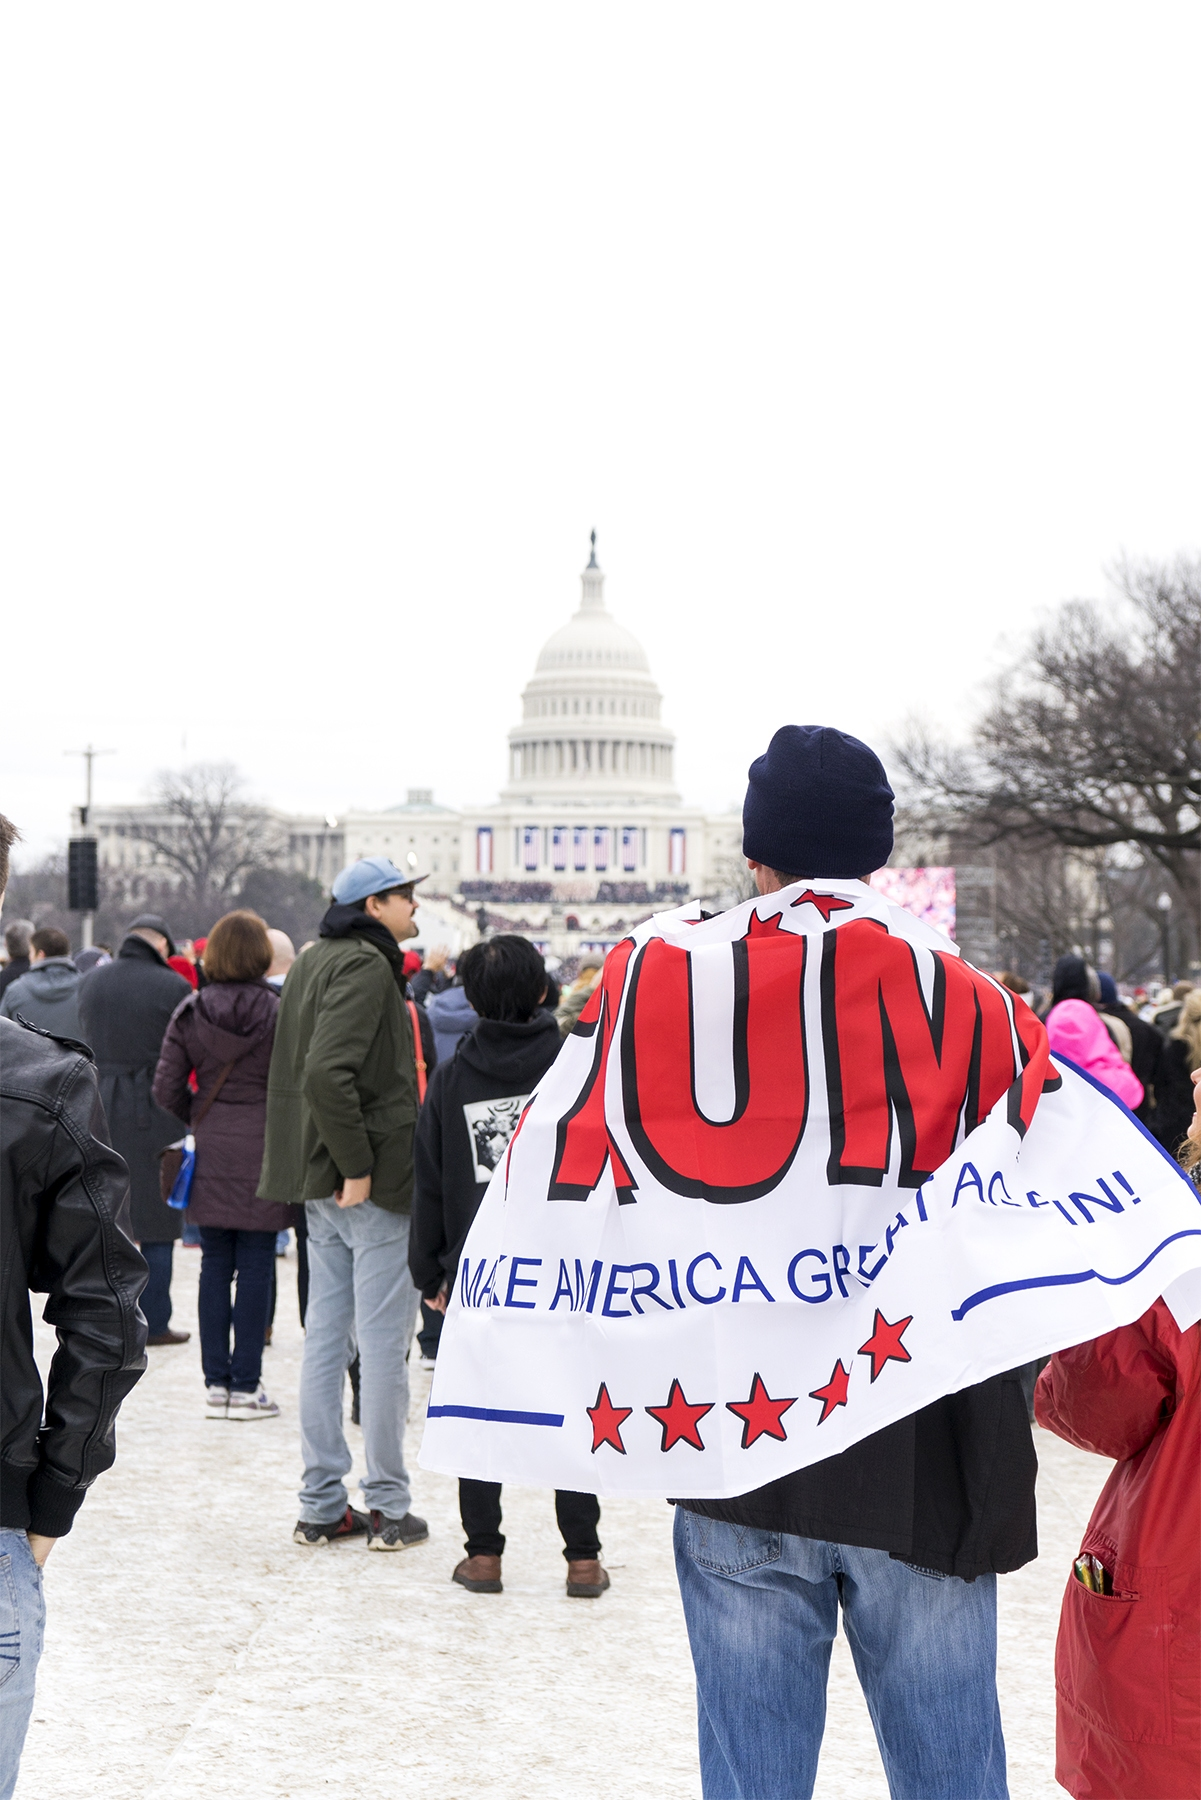 inauguration, 2017, president elect, donald trump, protest, january 20, washington dc, people, street,